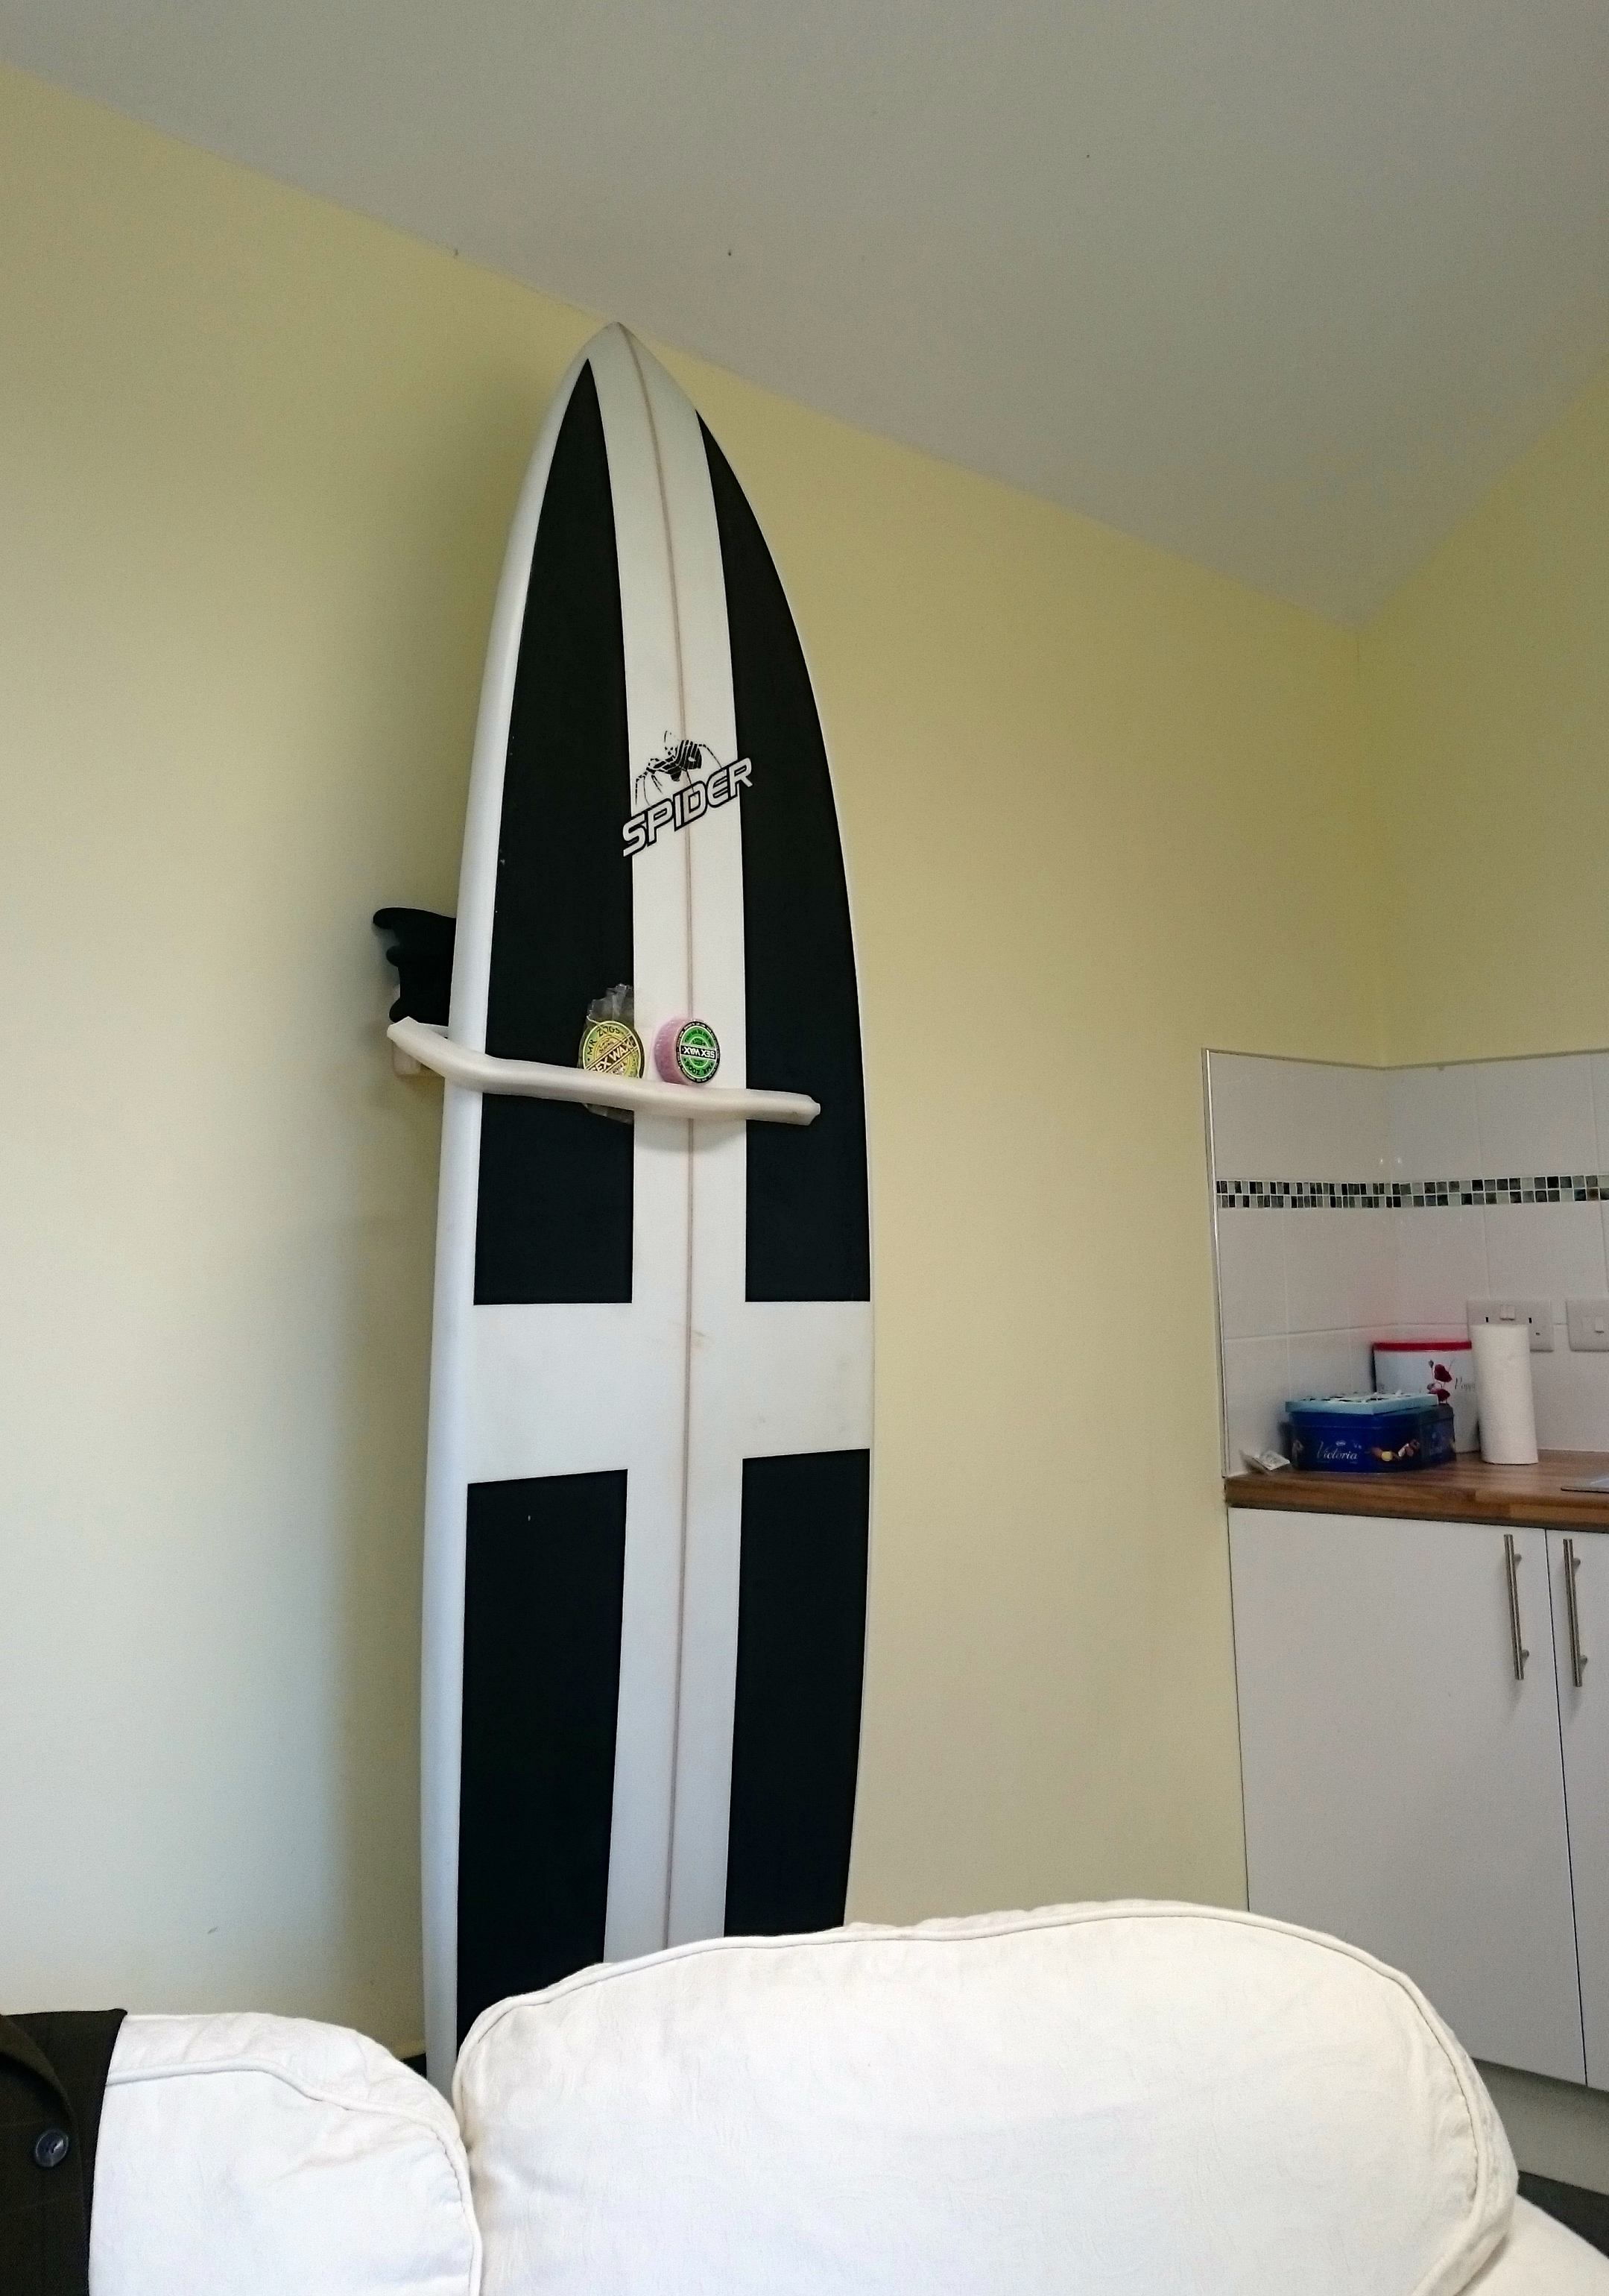 Pro Surfboard Mount For Hanging Your Surfboard As A Wall